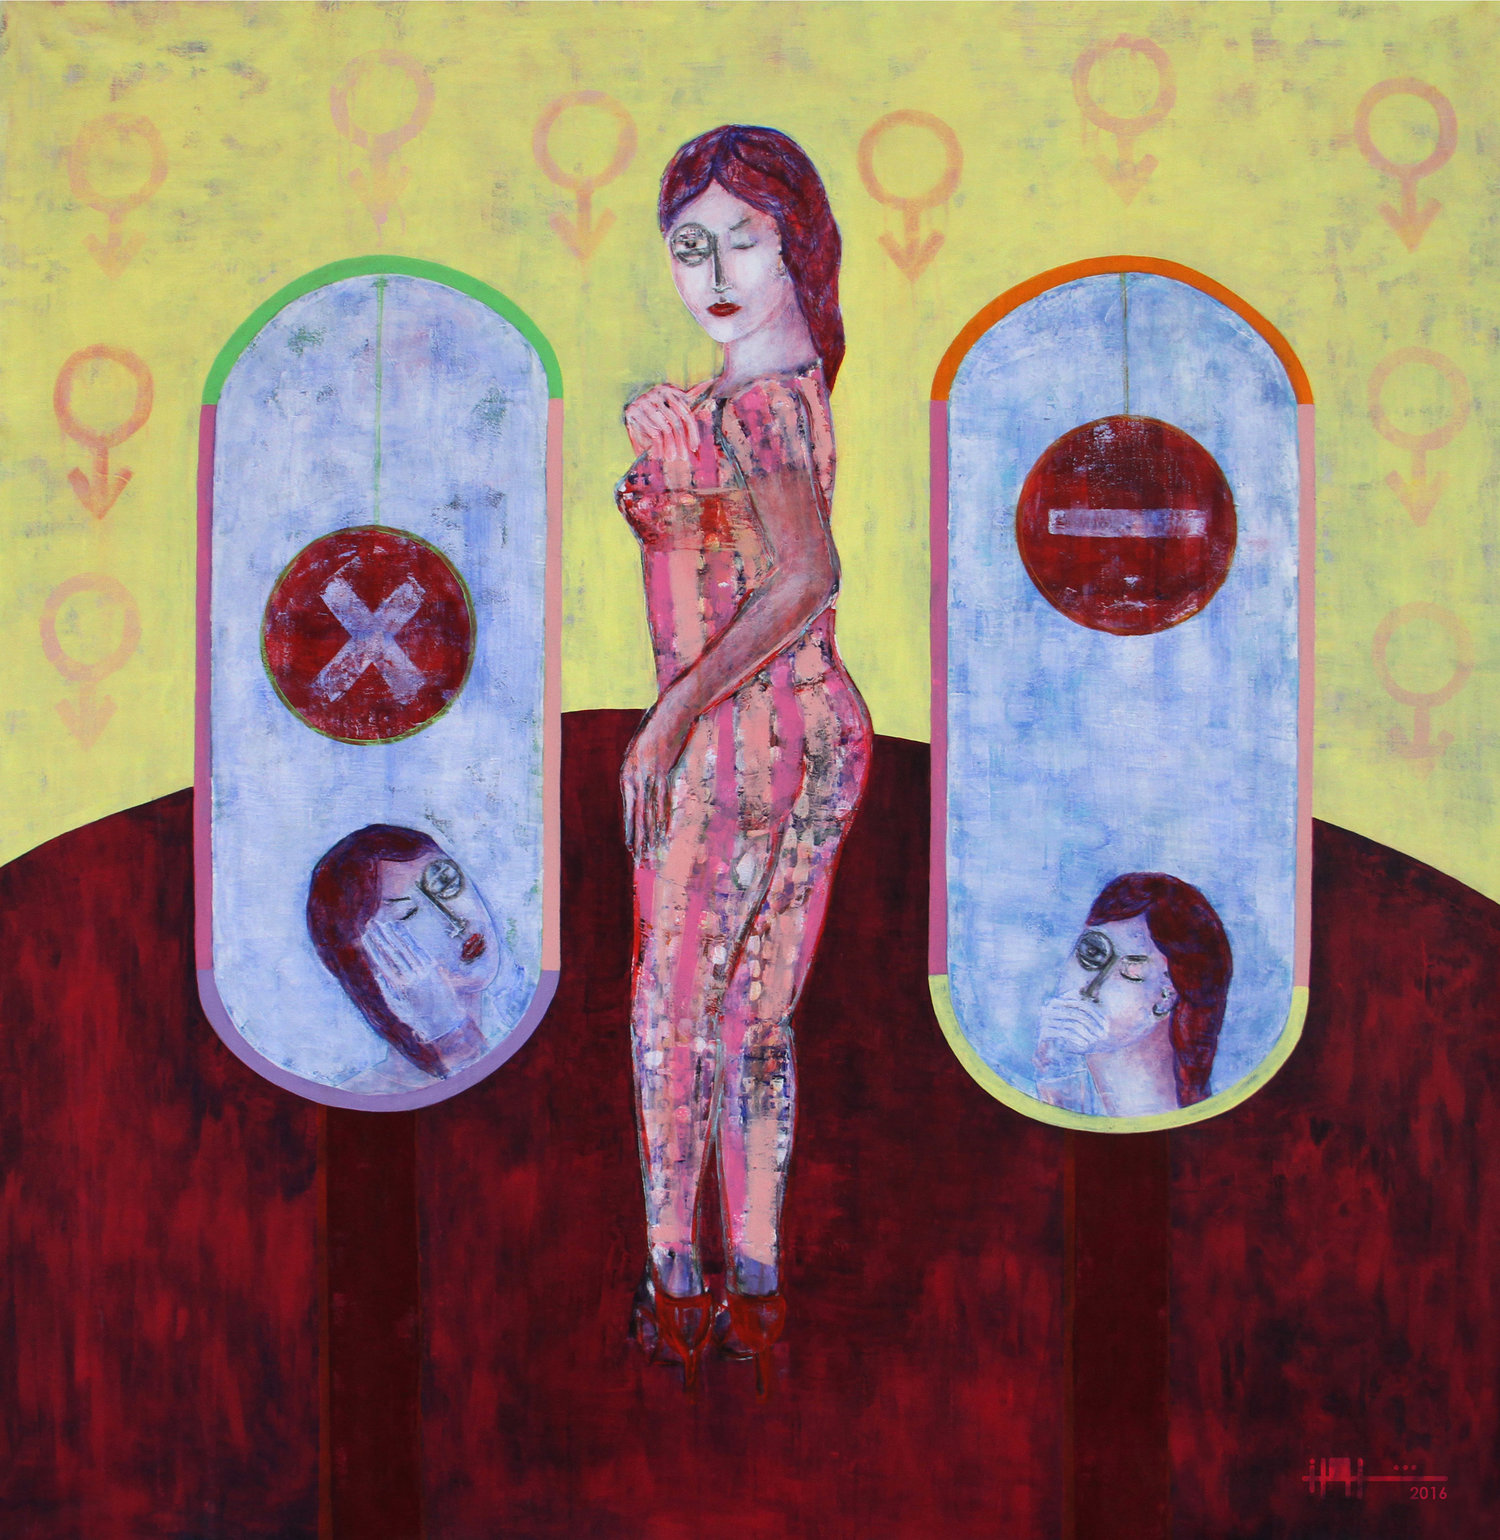 Rashwan Abdelbaki. Title: Women. Acrylic on Canvas. 150 x 150 cm. 2016.